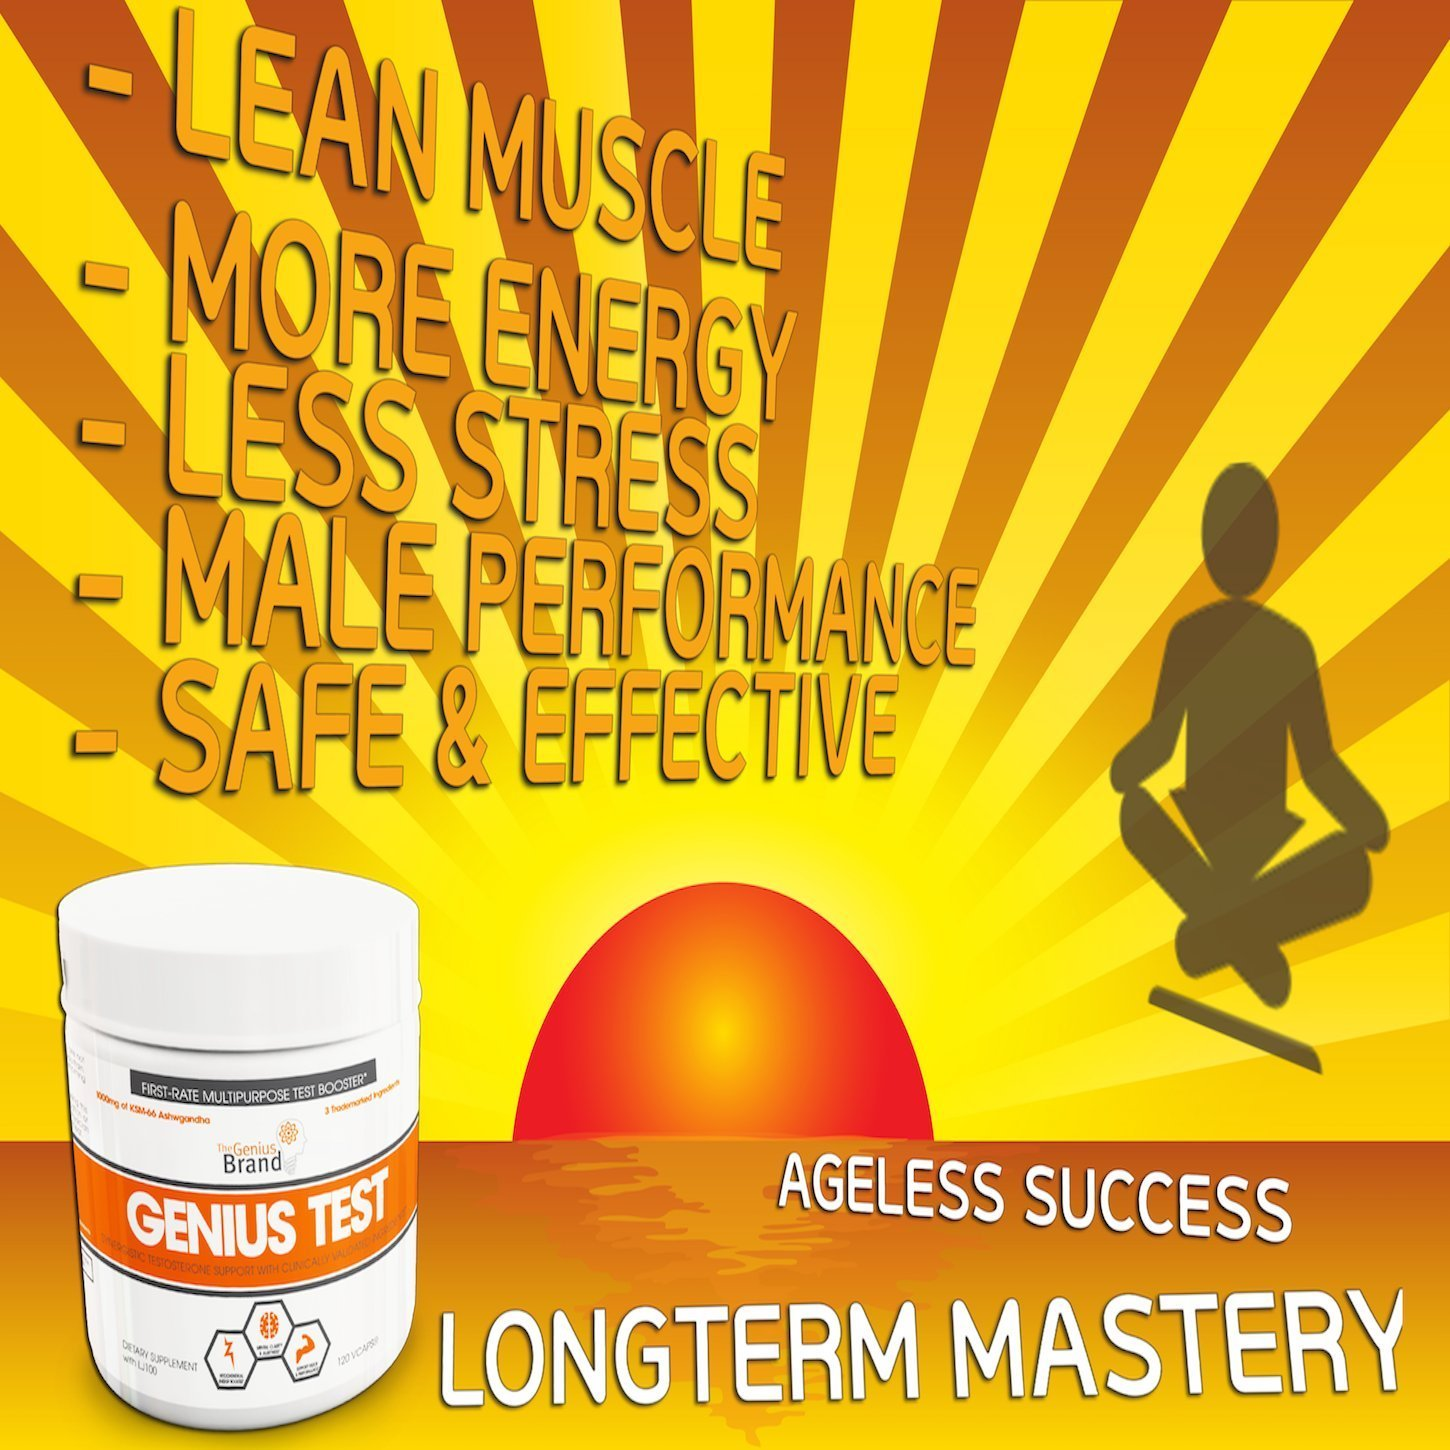 Genius Test Testosterone Support For The Smart Athlete